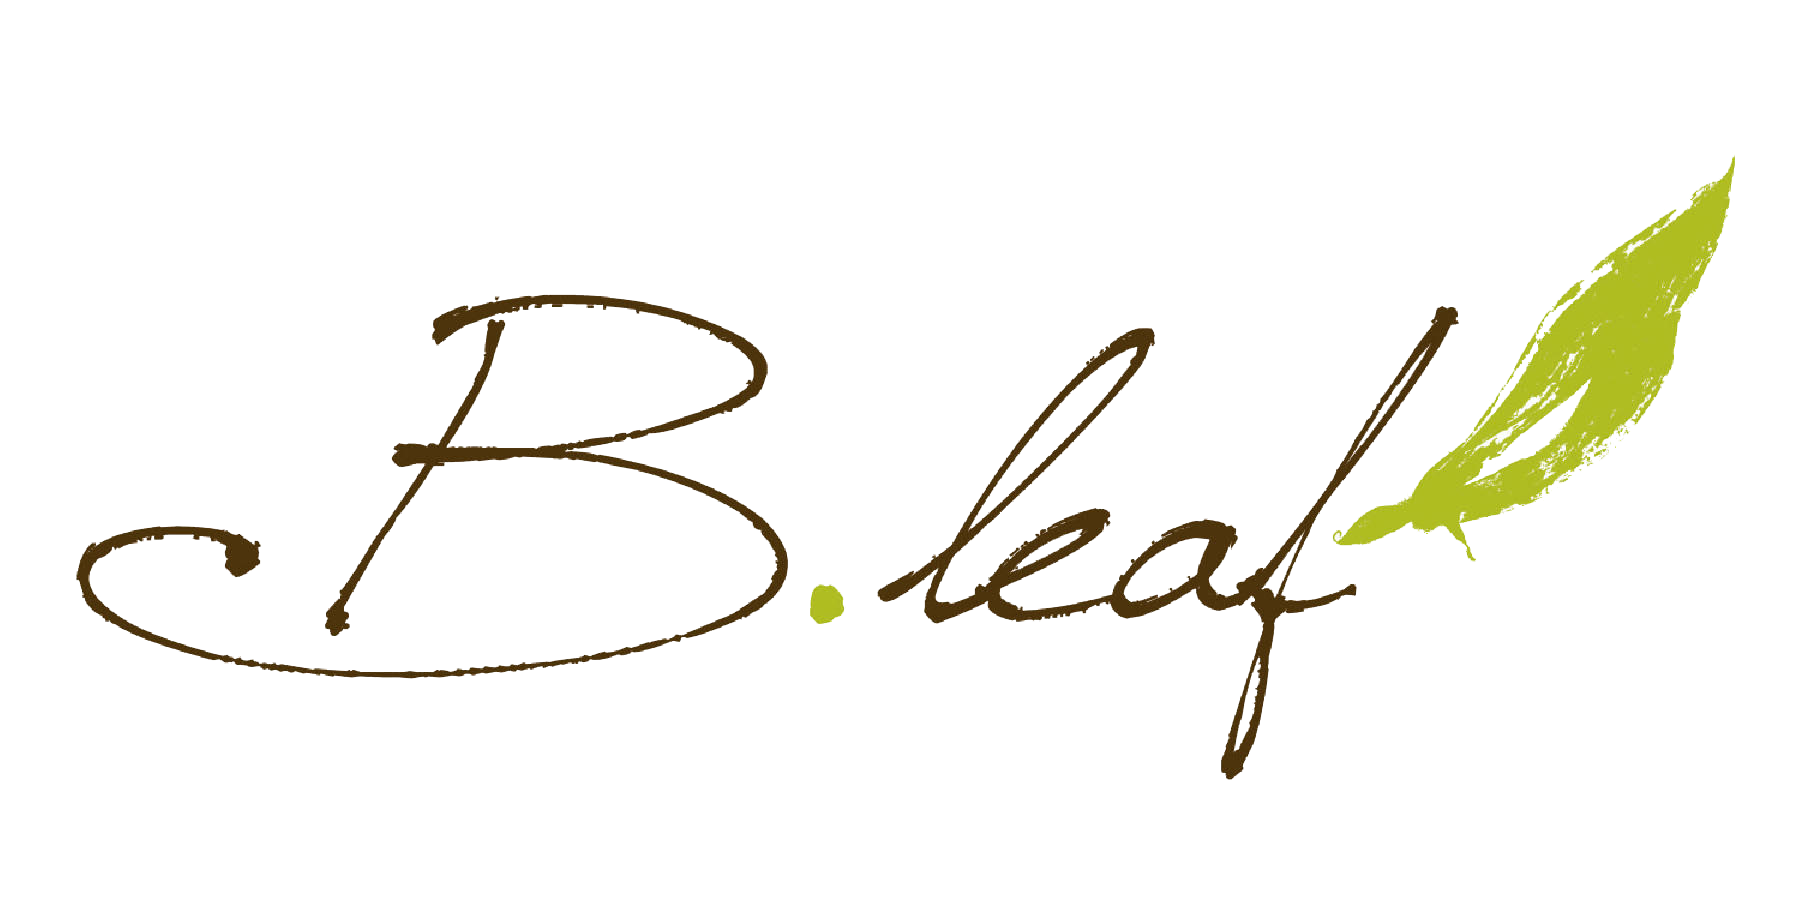 Medical Spa & Aesthetic Clinic | Billings, MT | B.Leaf